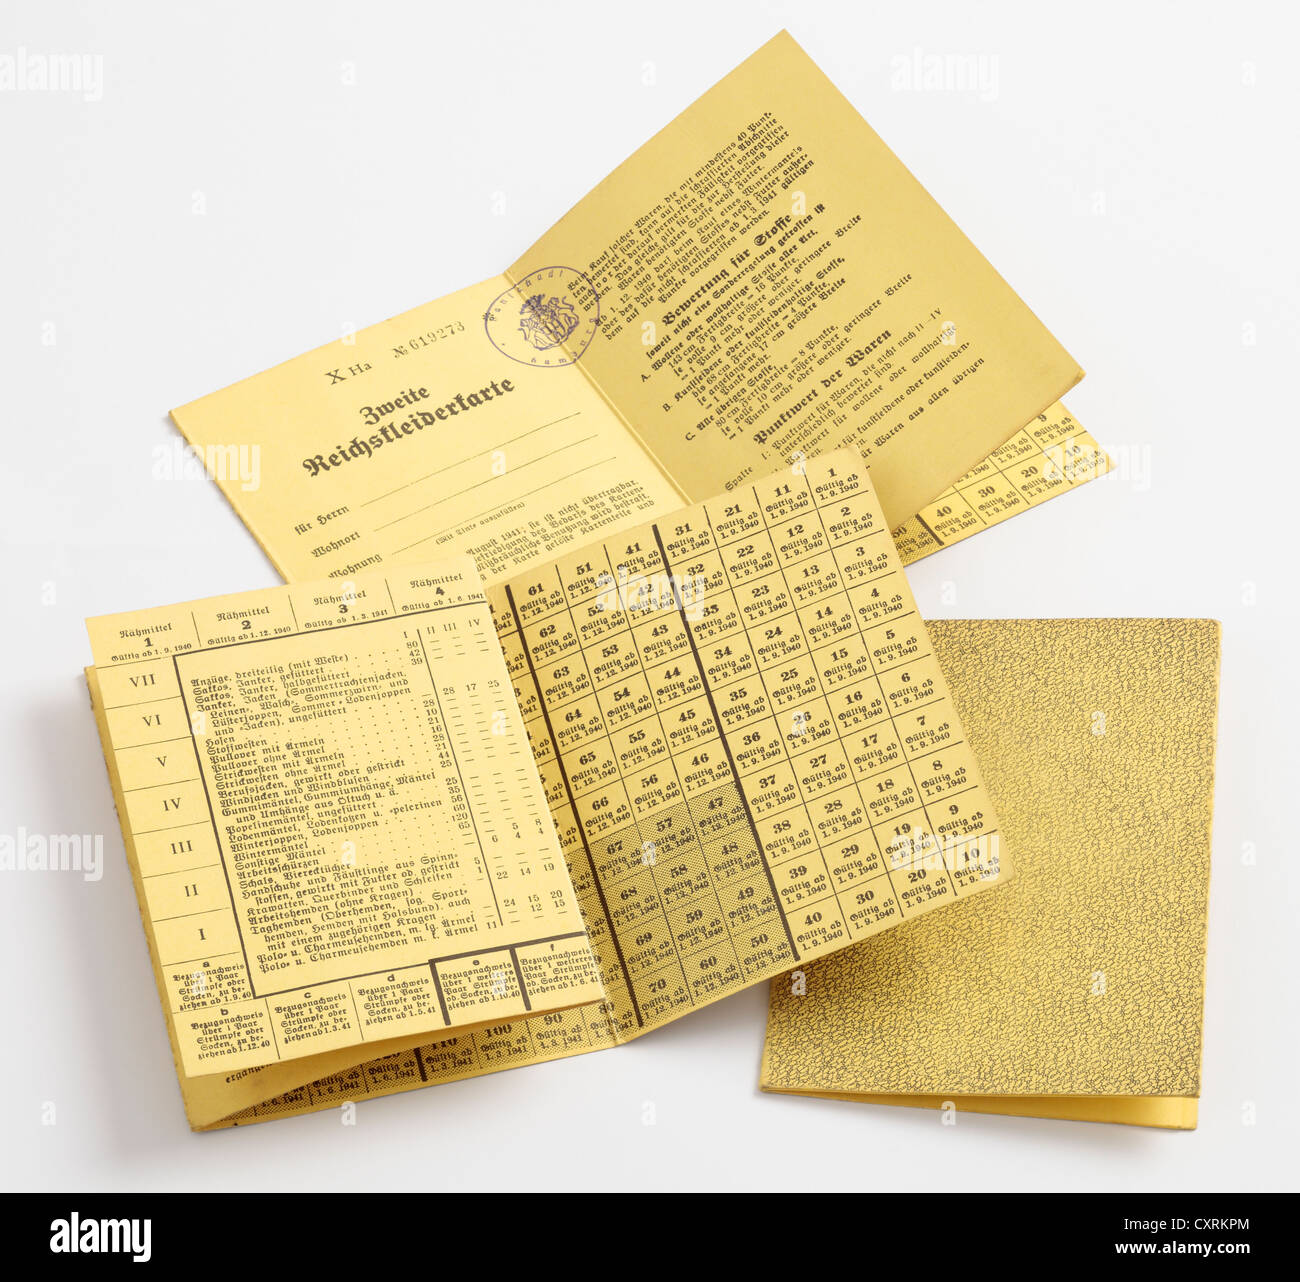 False Blank German Clothing Ration Books dropped by the British over Germany during WW2. - Stock Image